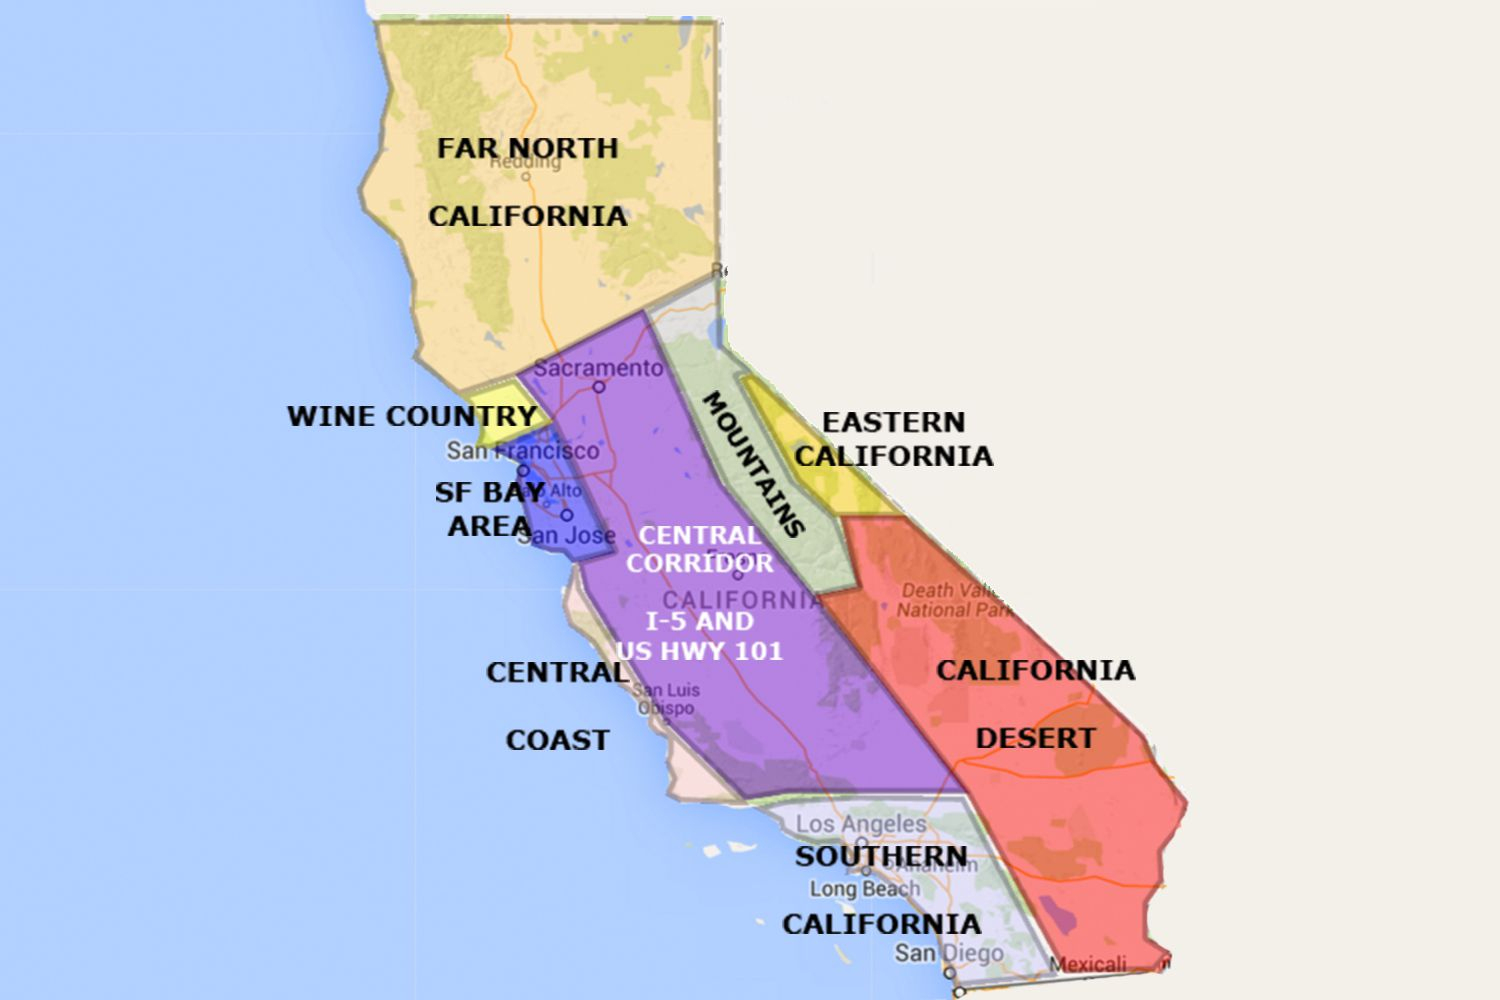 Best California Statearea And Regions Map - Map Of Central And Northern California Coast